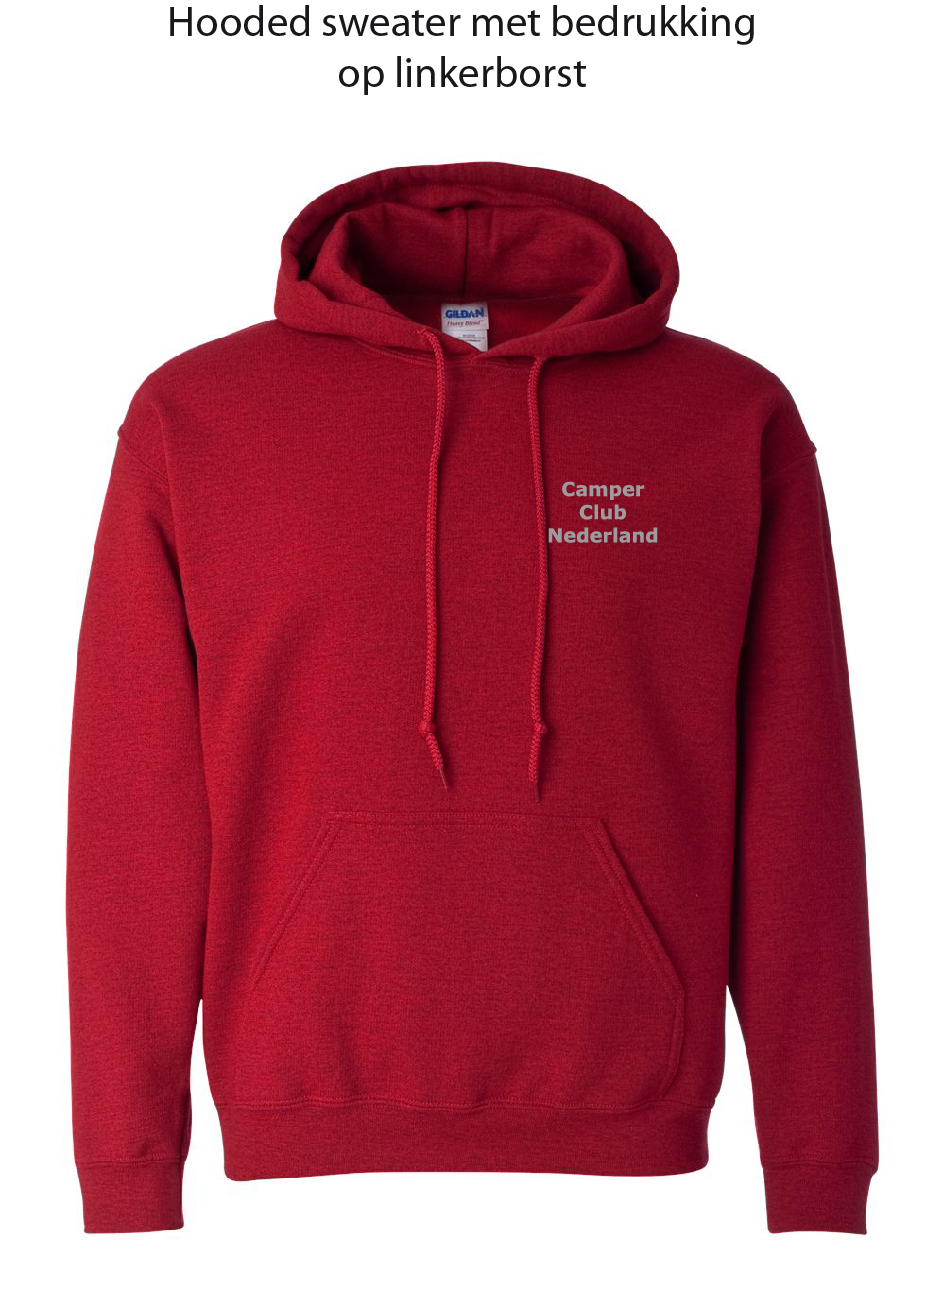 Hoodie lob Antique Cherry Red